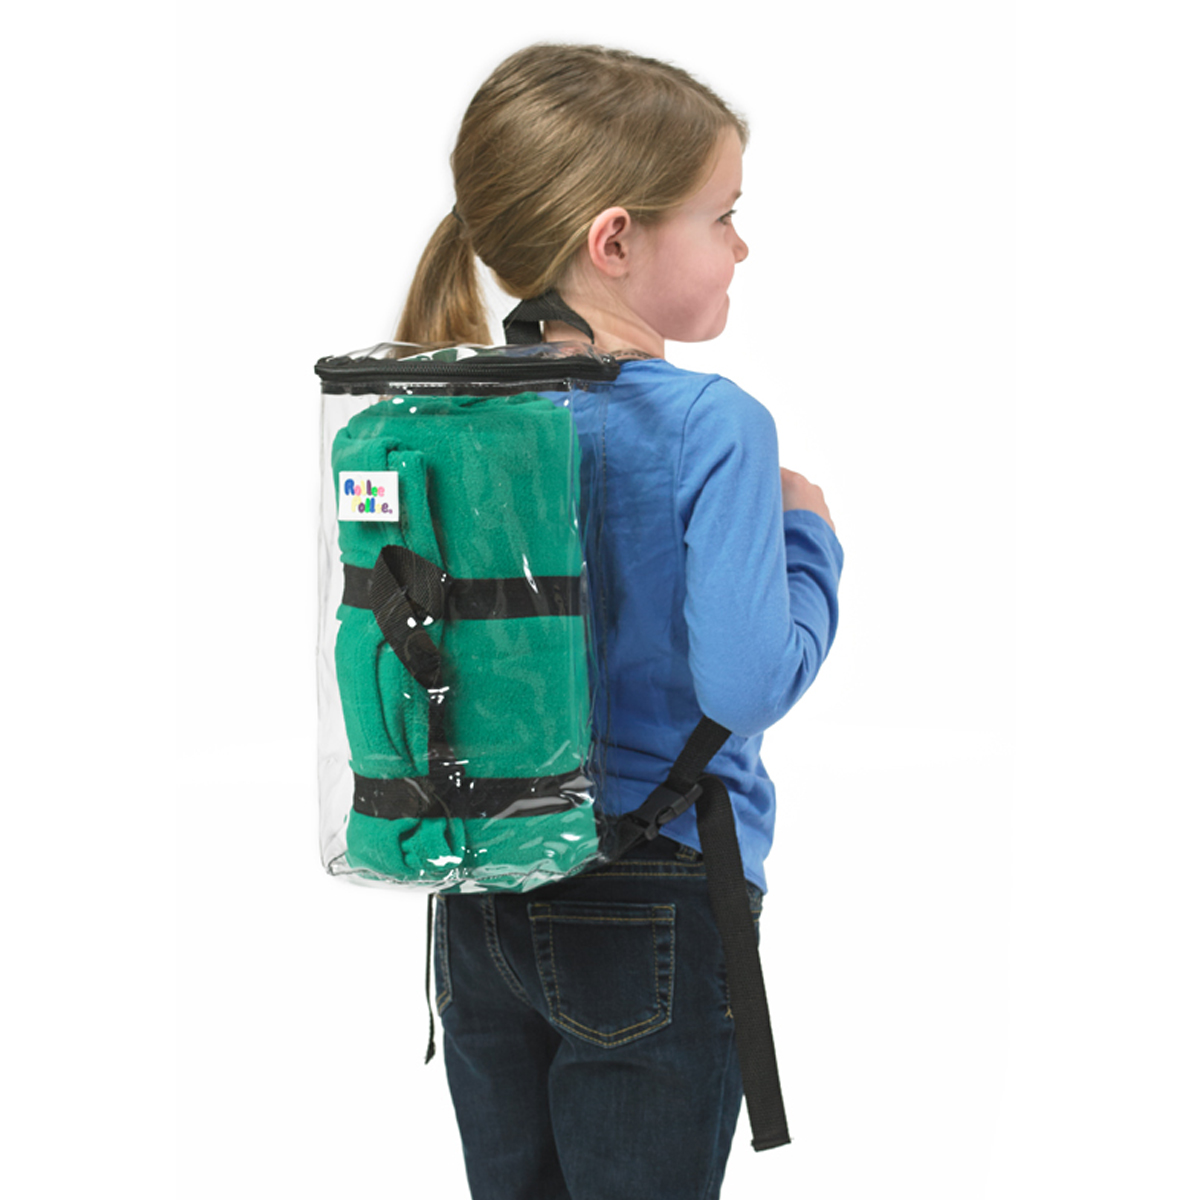 Backpack Pillow Rollee Pollee Nap Sac Green Nap Mat Cover Pillow Blanket